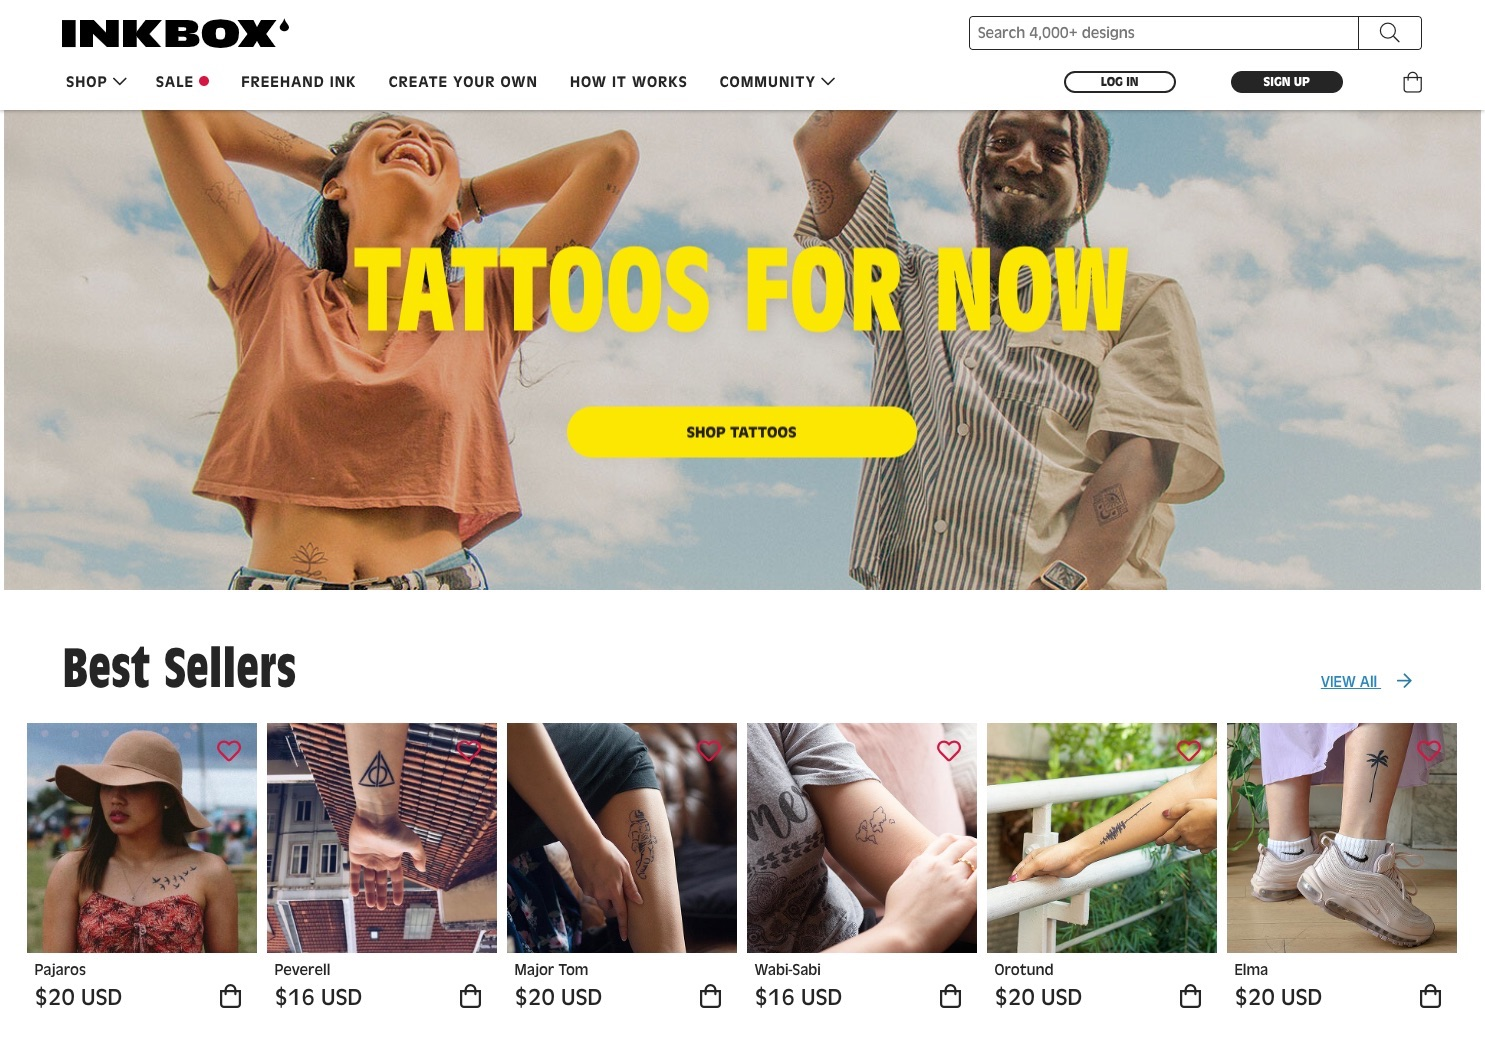 Headless e-commerce build Inkbox™ Tattoos for now